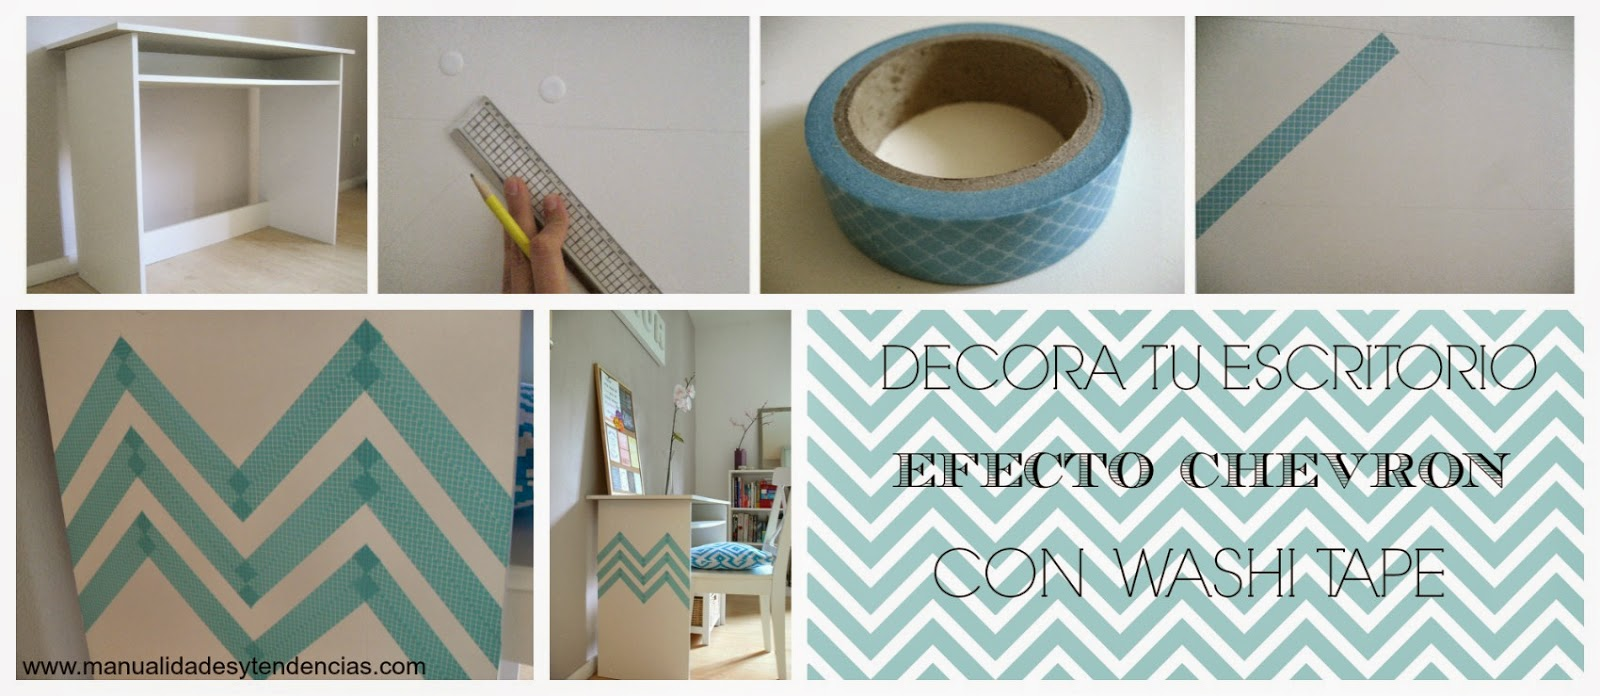 cómo decorar un escritorio con washi tape